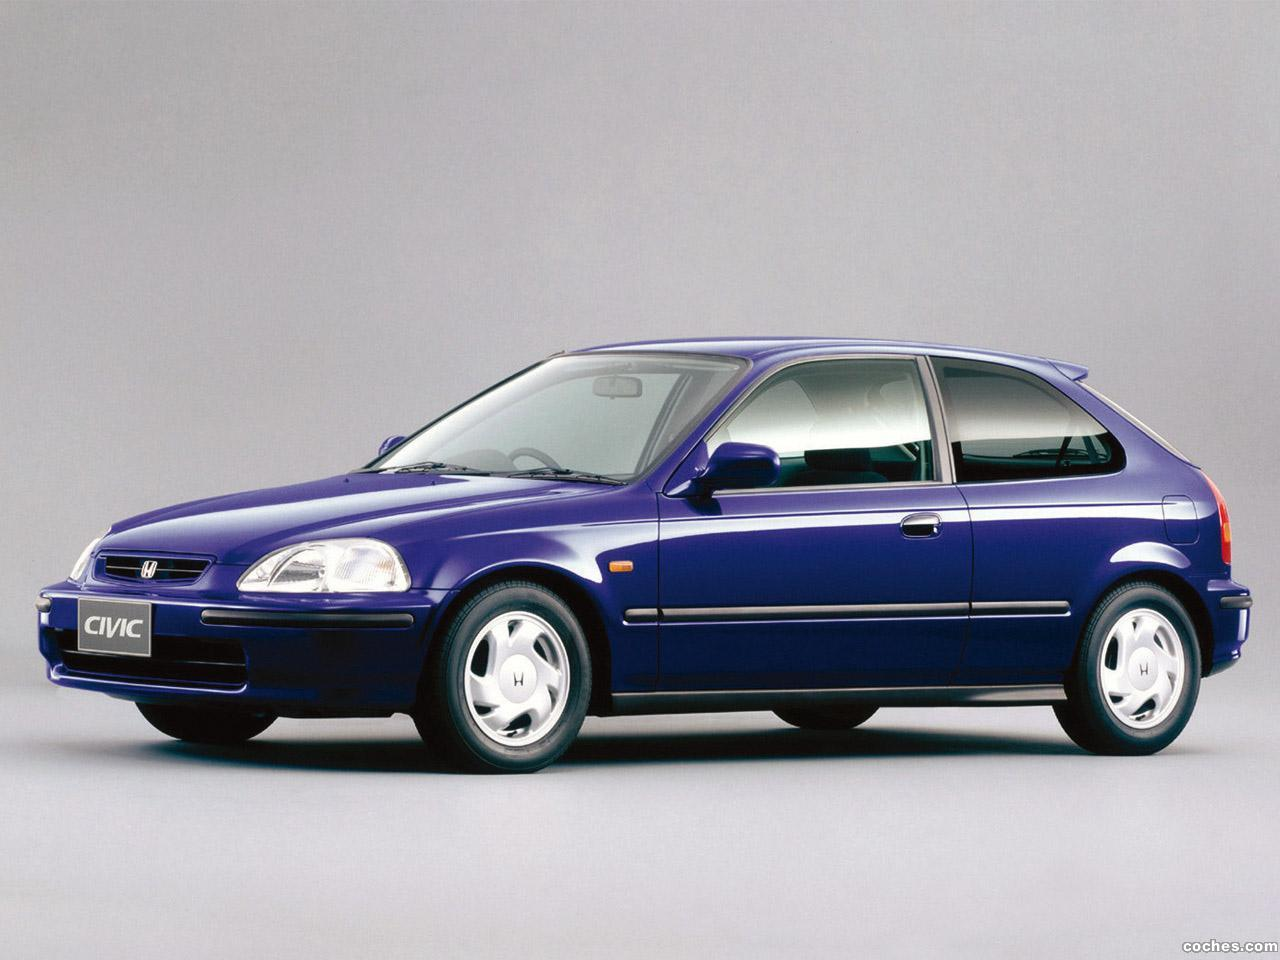 Foto 0 de Honda Civic VTi Hatchback 1995